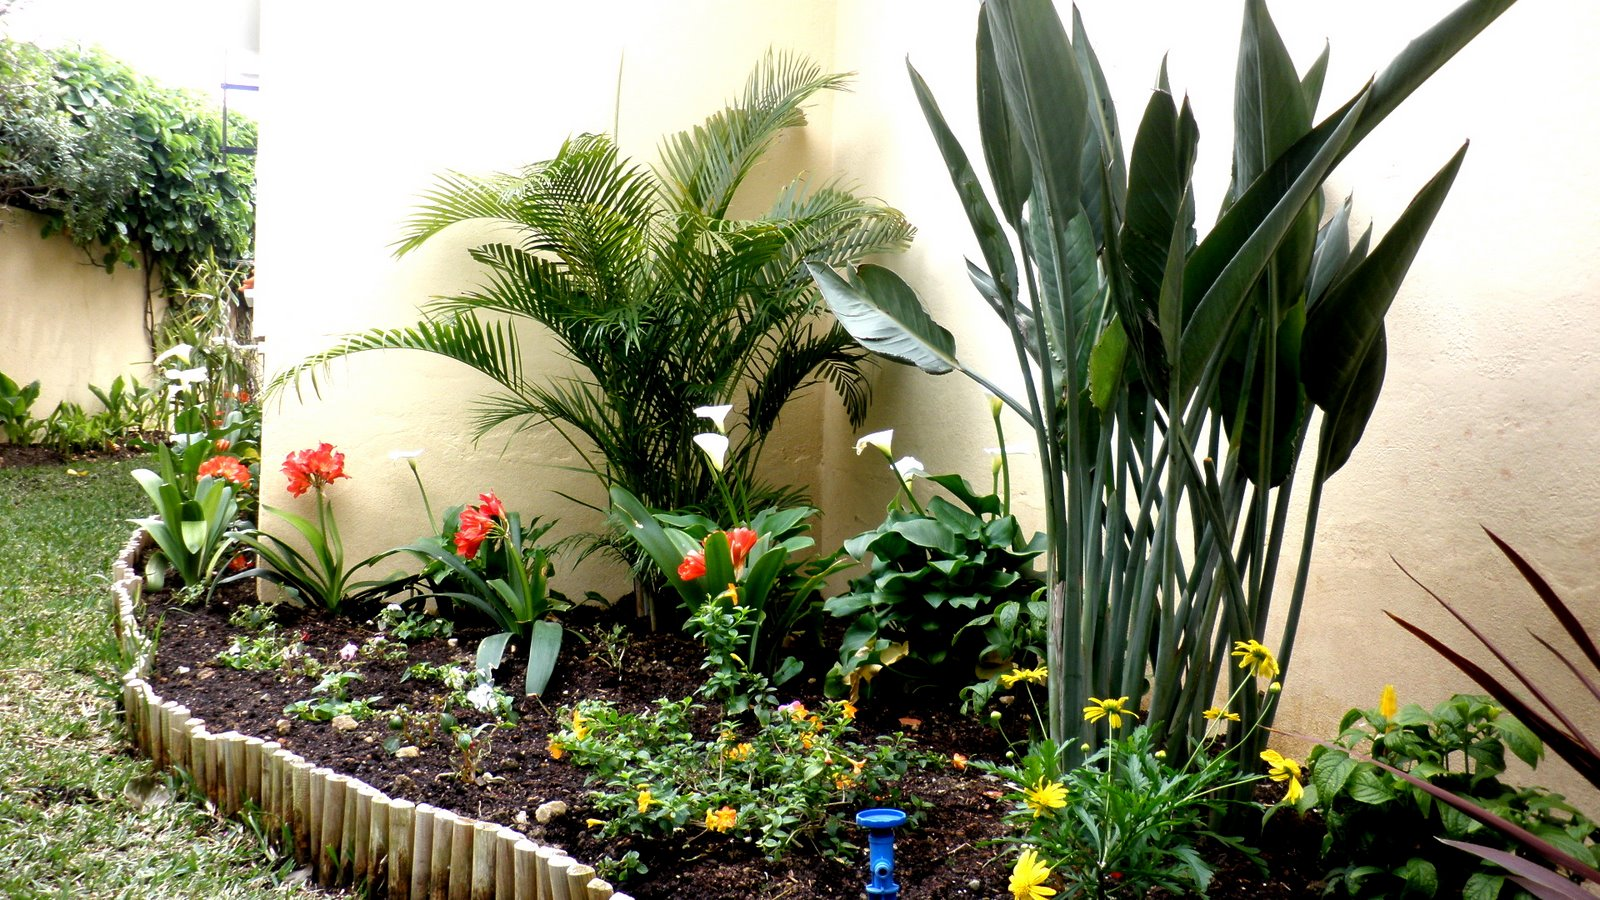 Jardinbio jardin peque o decoracion terminada iii for Decoracion jardin exterior pequeno